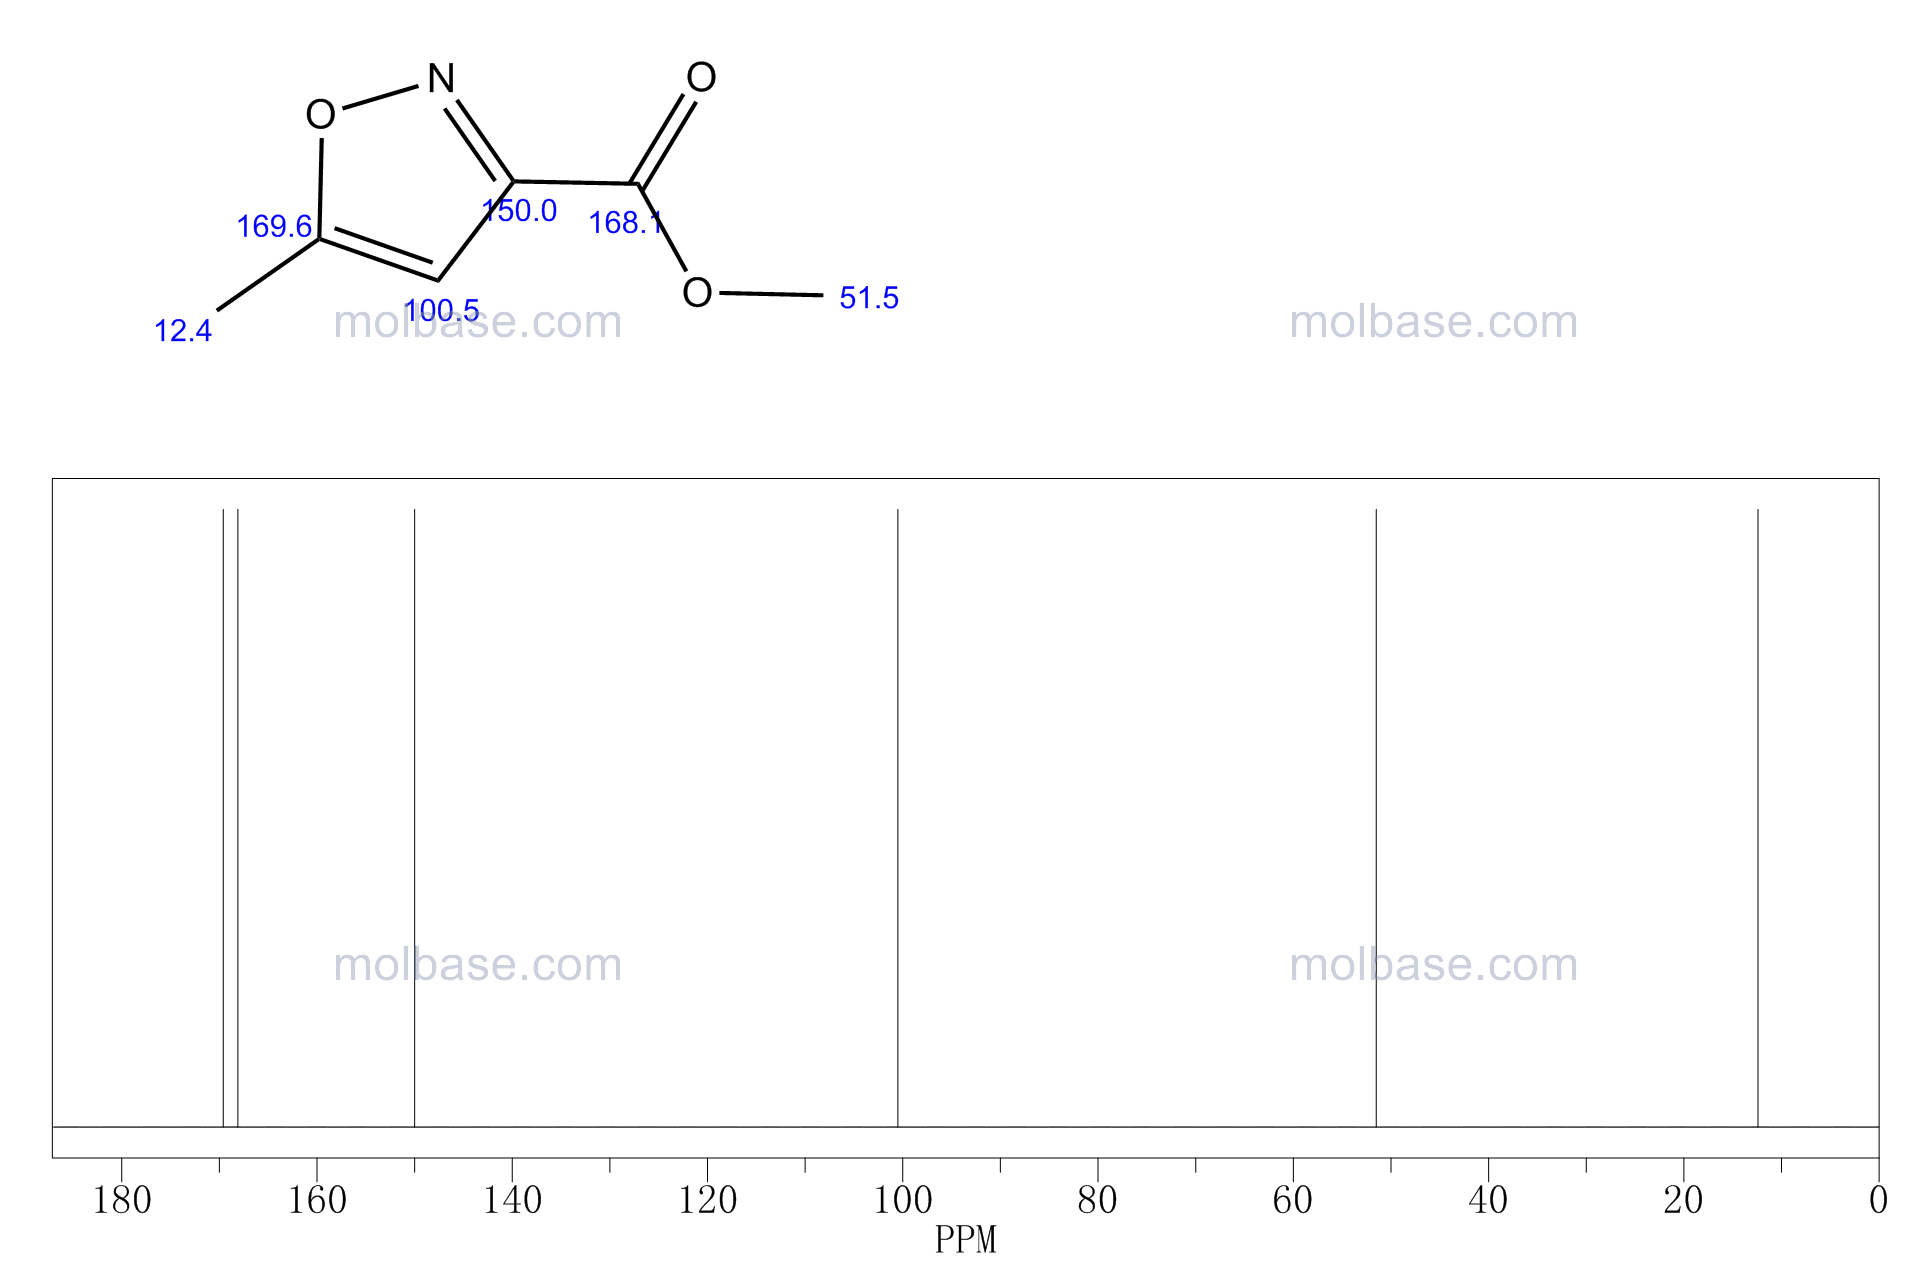 methyl 5-methyl-1,2-oxazole-3-carboxylate NMR spectra analysis, Chemical CAS NO. 19788-35-3 NMR spectral analysis, methyl 5-methyl-1,2-oxazole-3-carboxylate C-NMR spectrum